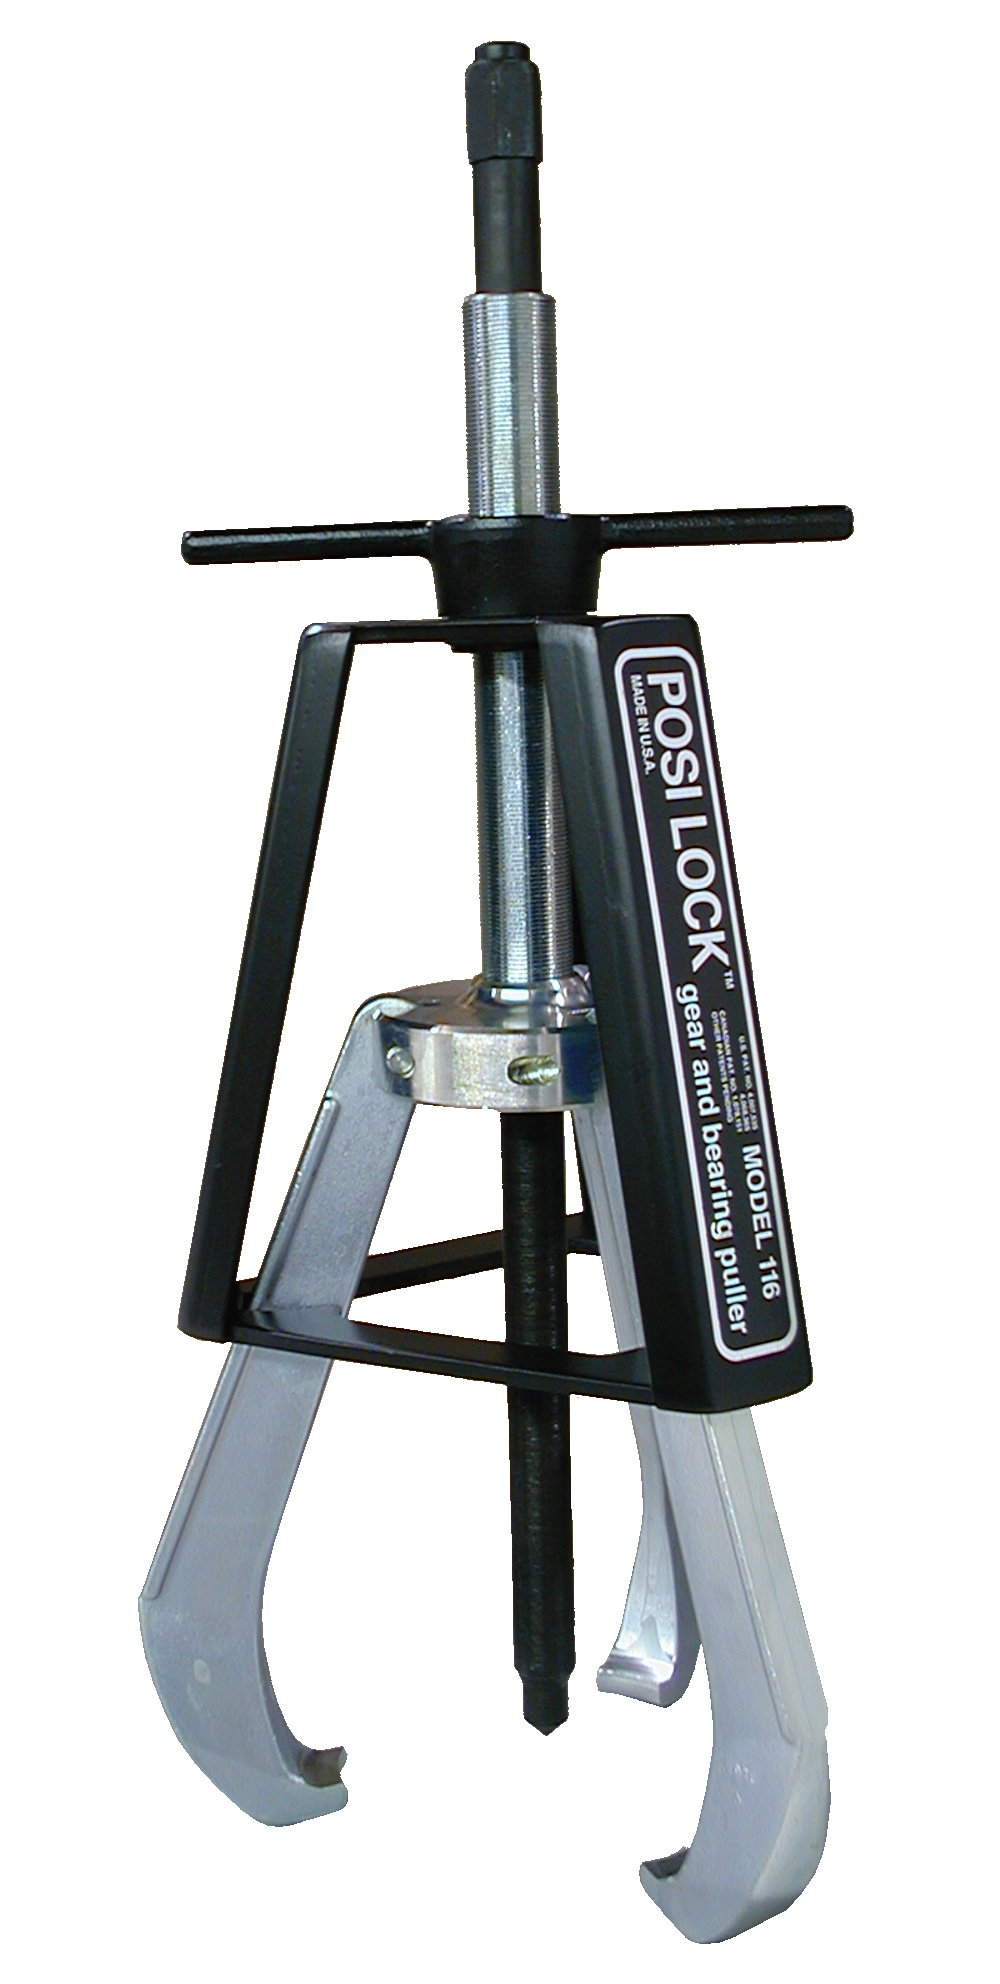 Posi Lock 116 Manual Puller, 3 Jaws, 40 tons Capacity, 14'' Reach, 3'' - 25'' Spread Range, 32'' Overall Length